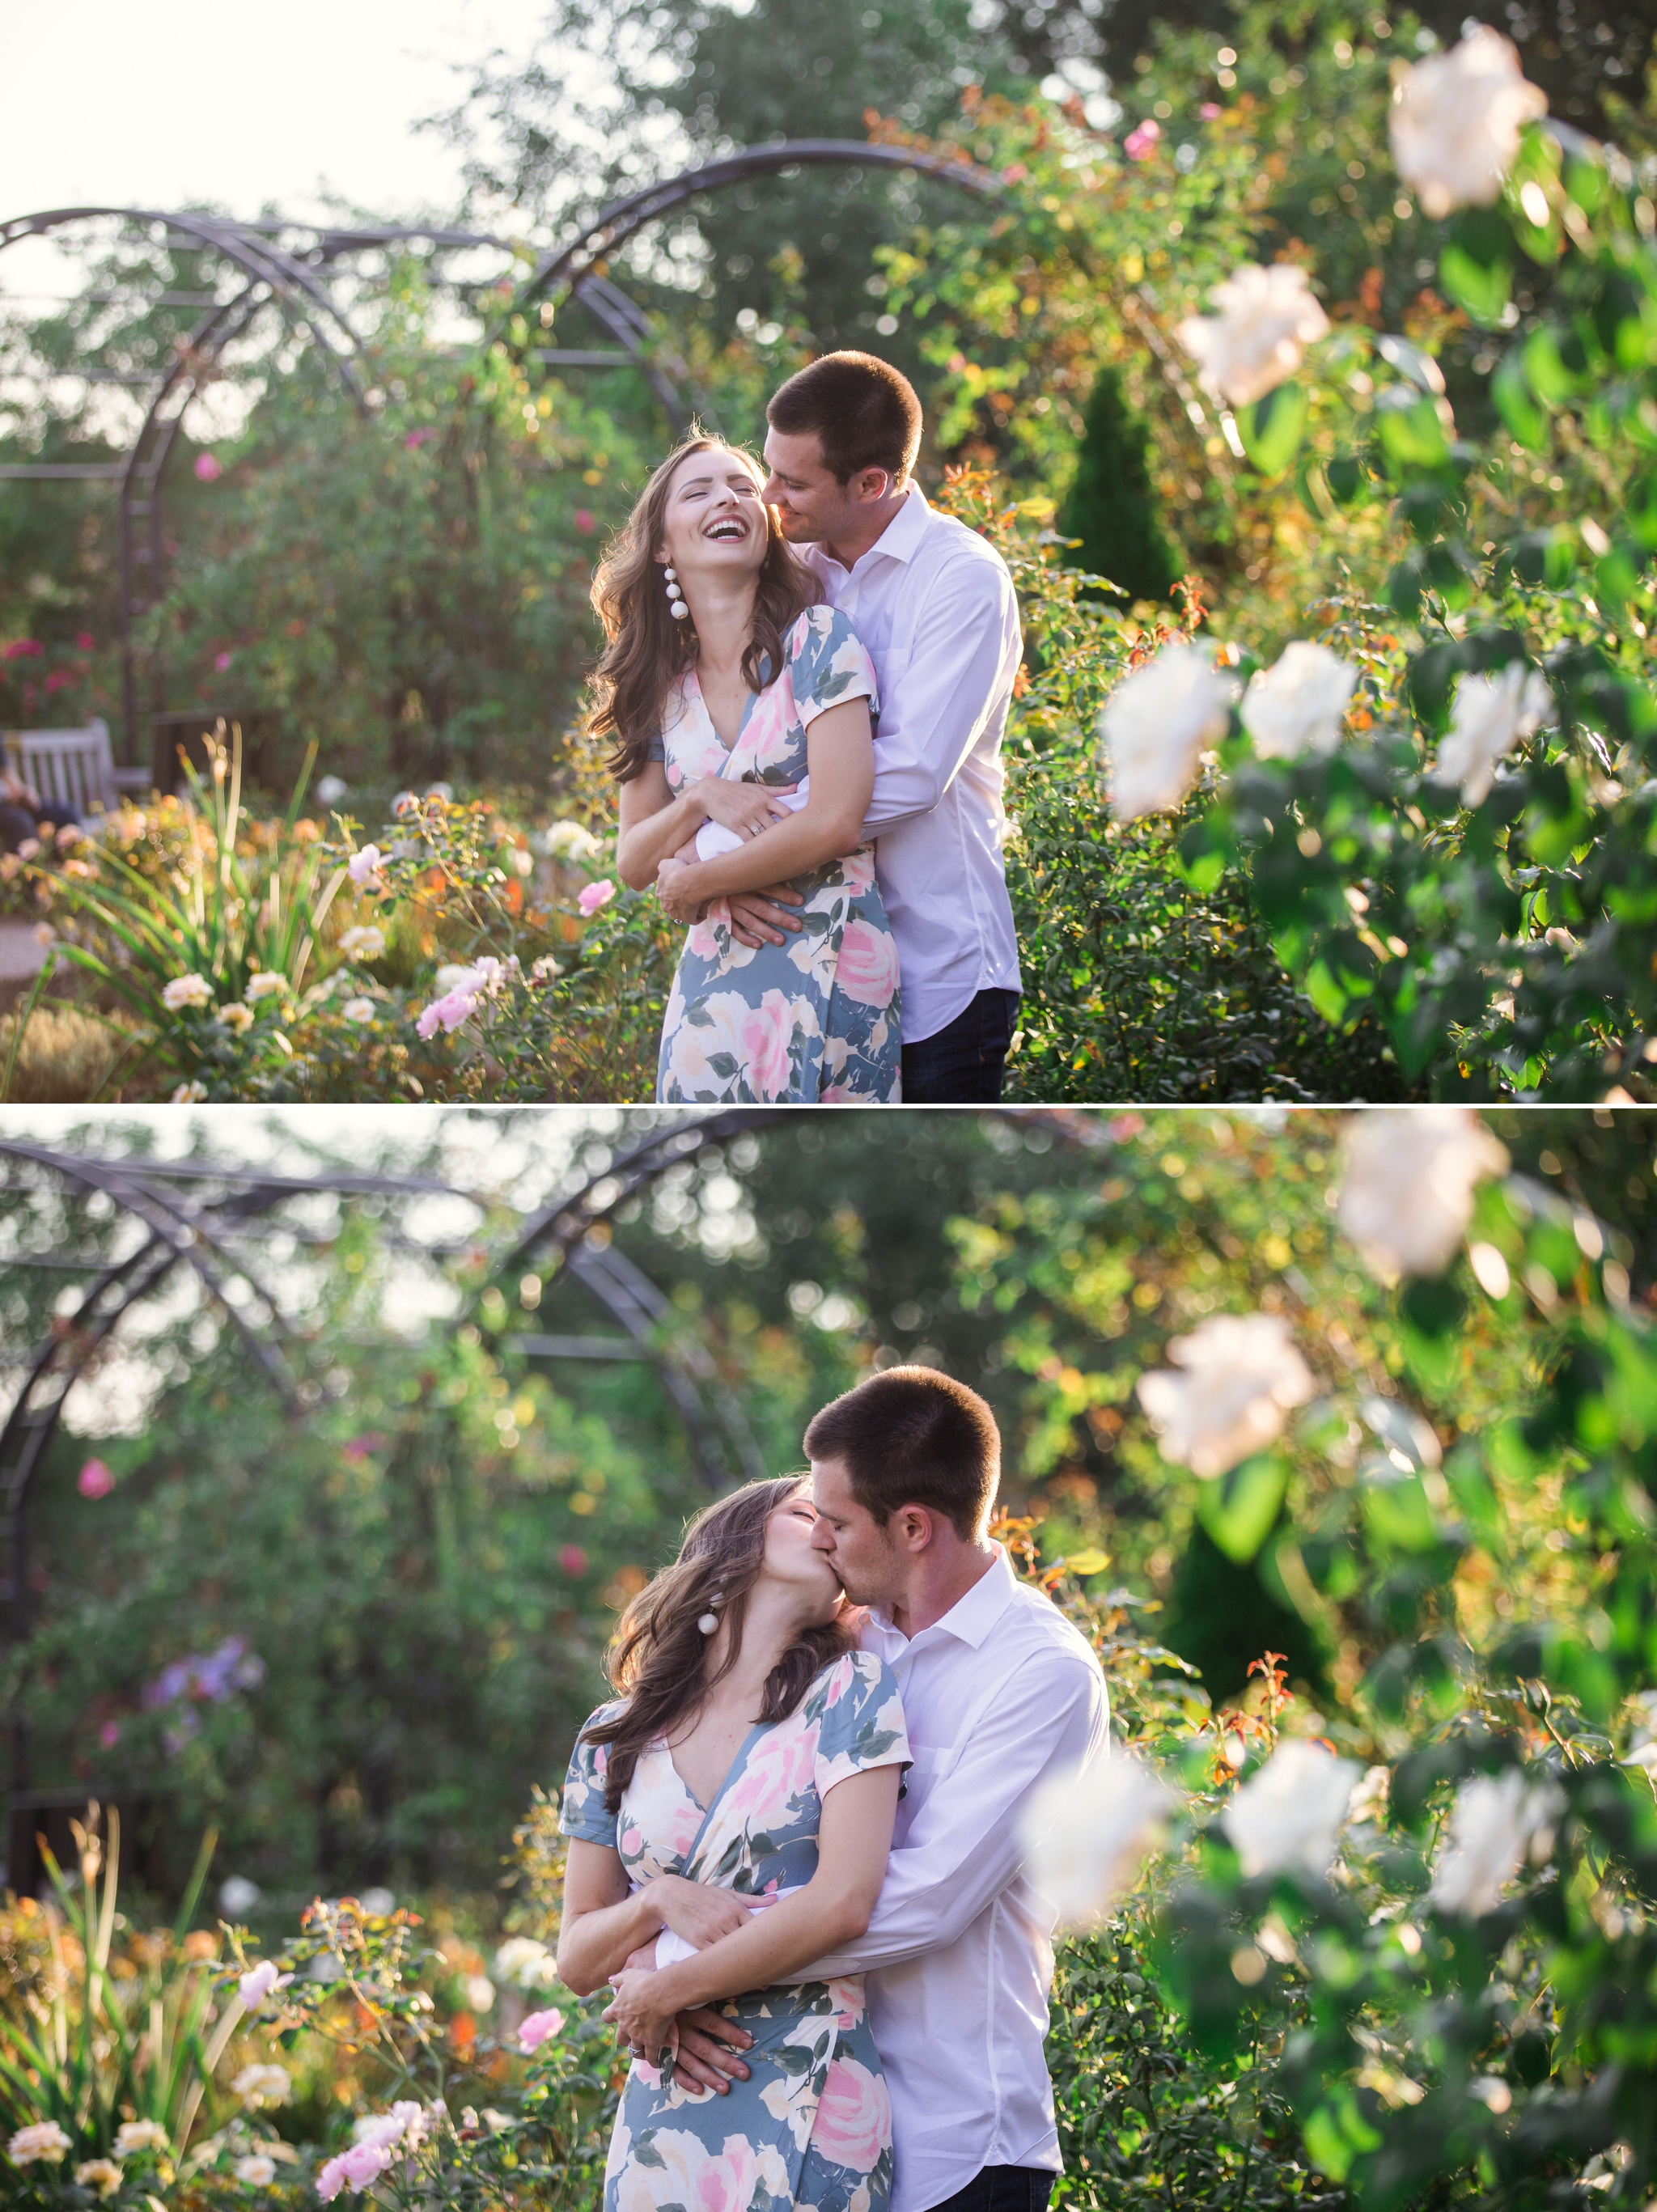 Paige + Tyler - Engagement Photography Session at the JC Raulston Arboretum - Raleigh Wedding Photographer 3.jpg